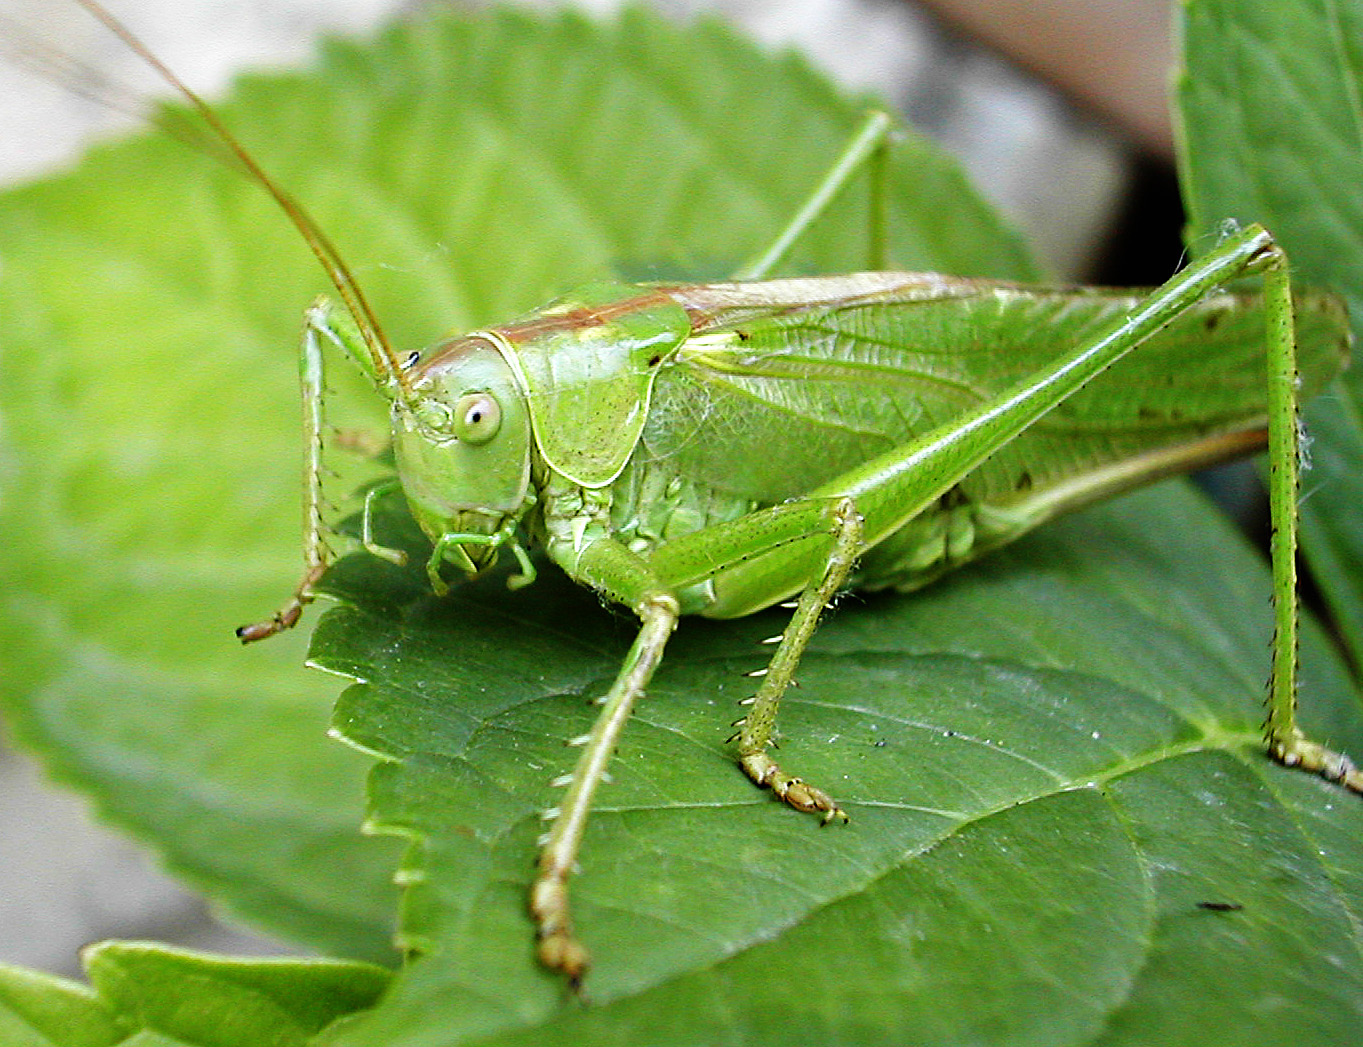 Organizing Tips just for Crickets - What ClutterBug Are You?